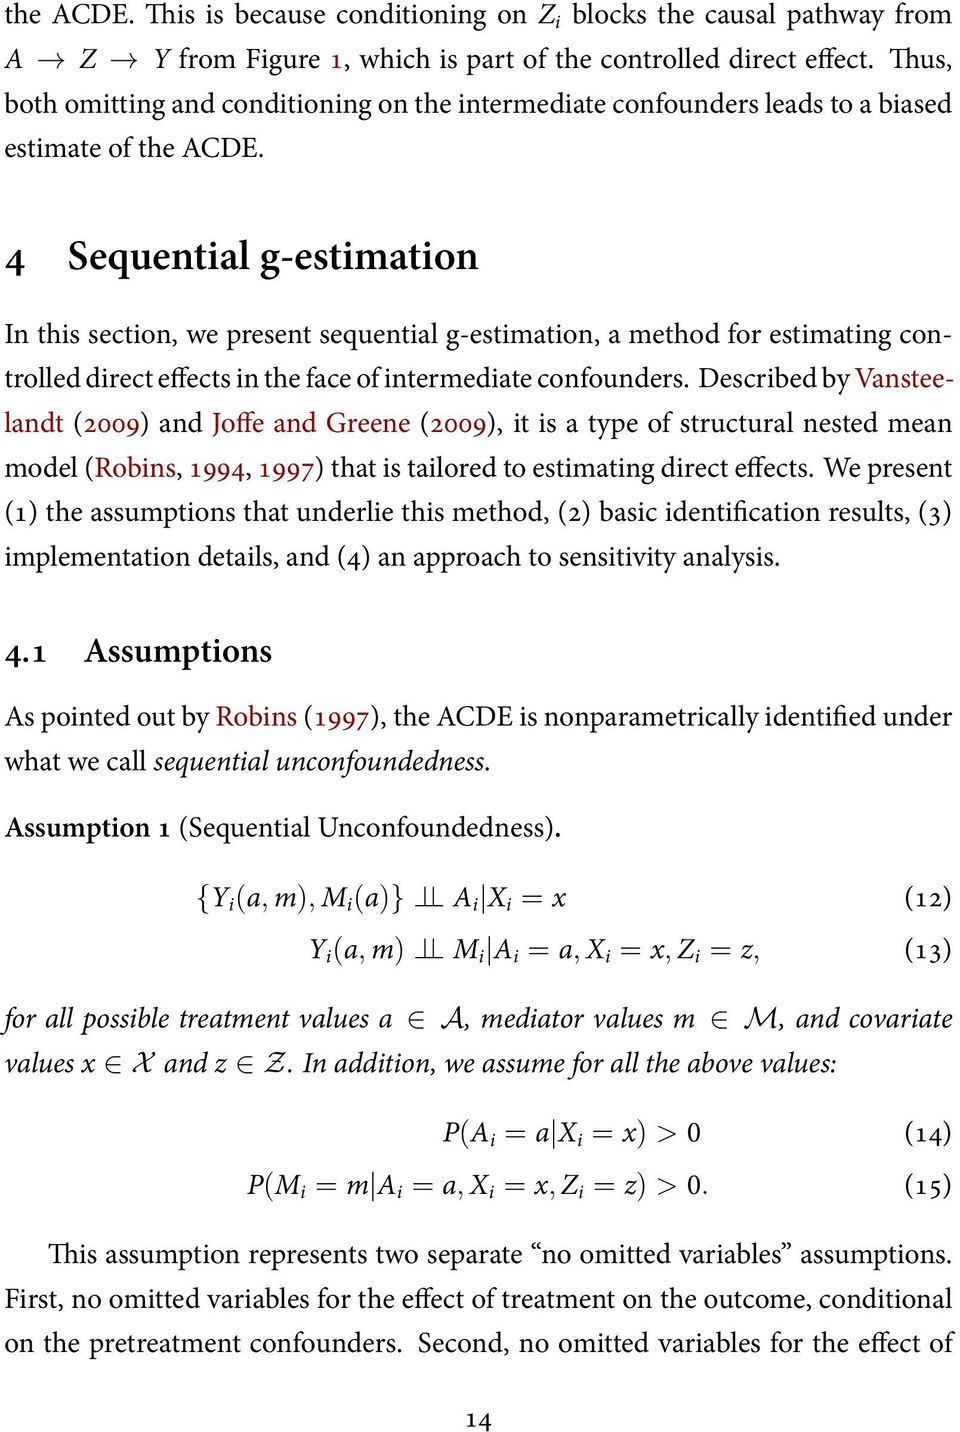 4 Sequential g-estimation In this section, we present sequential g-estimation, a method for estimating controlled direct effects in the face of intermediate confounders.